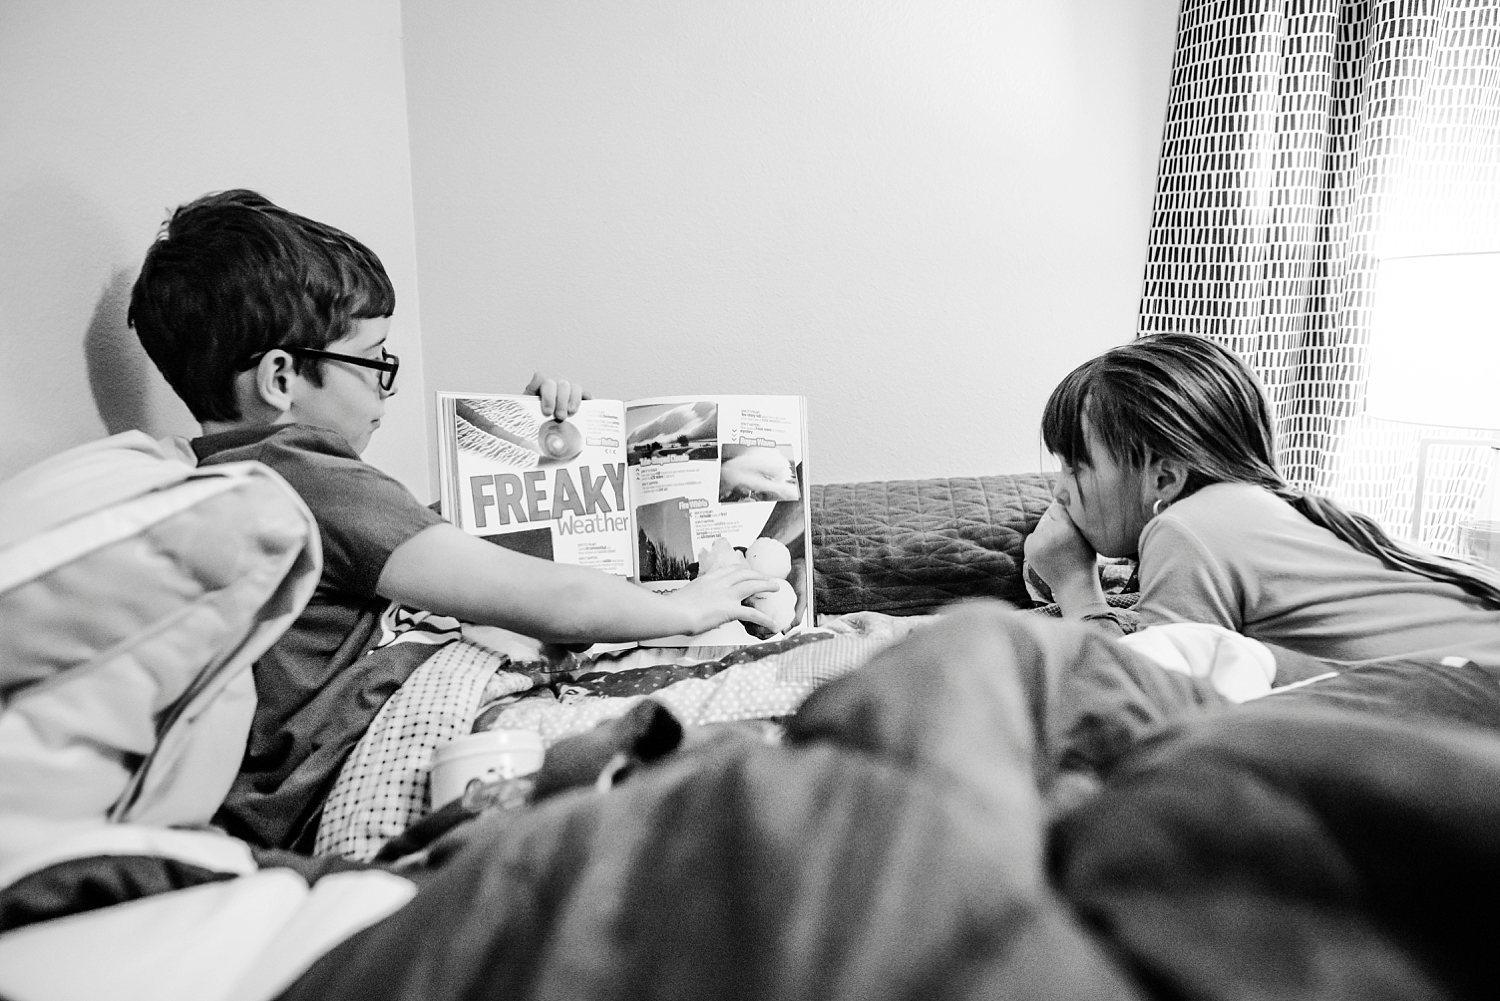 Townes points out something freaky from his book before bed. | GettingUnschooled.com